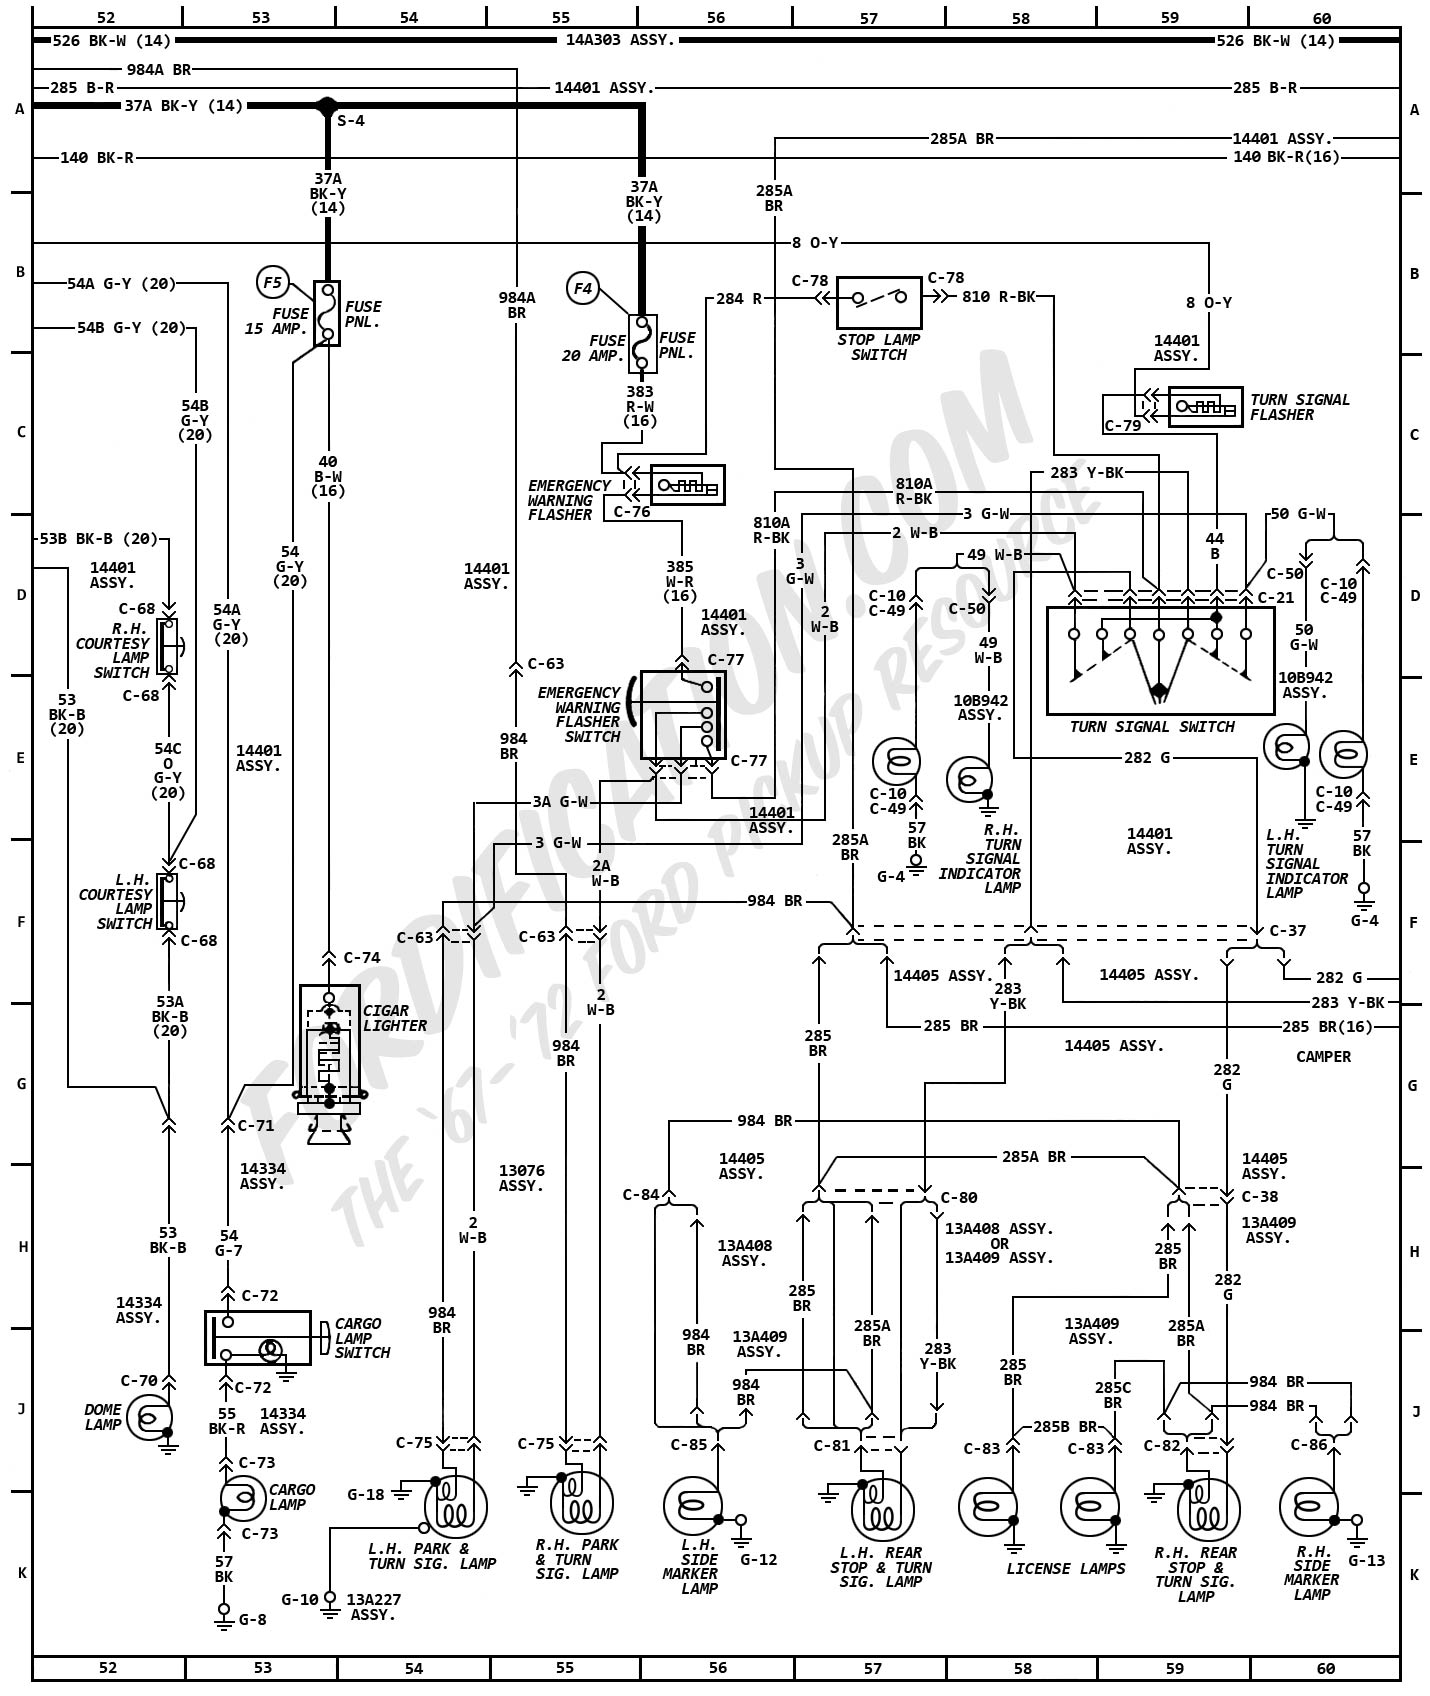 72 ford f100 dash wiring diagram chevelle 1971 1972 schematic great installation of u2022